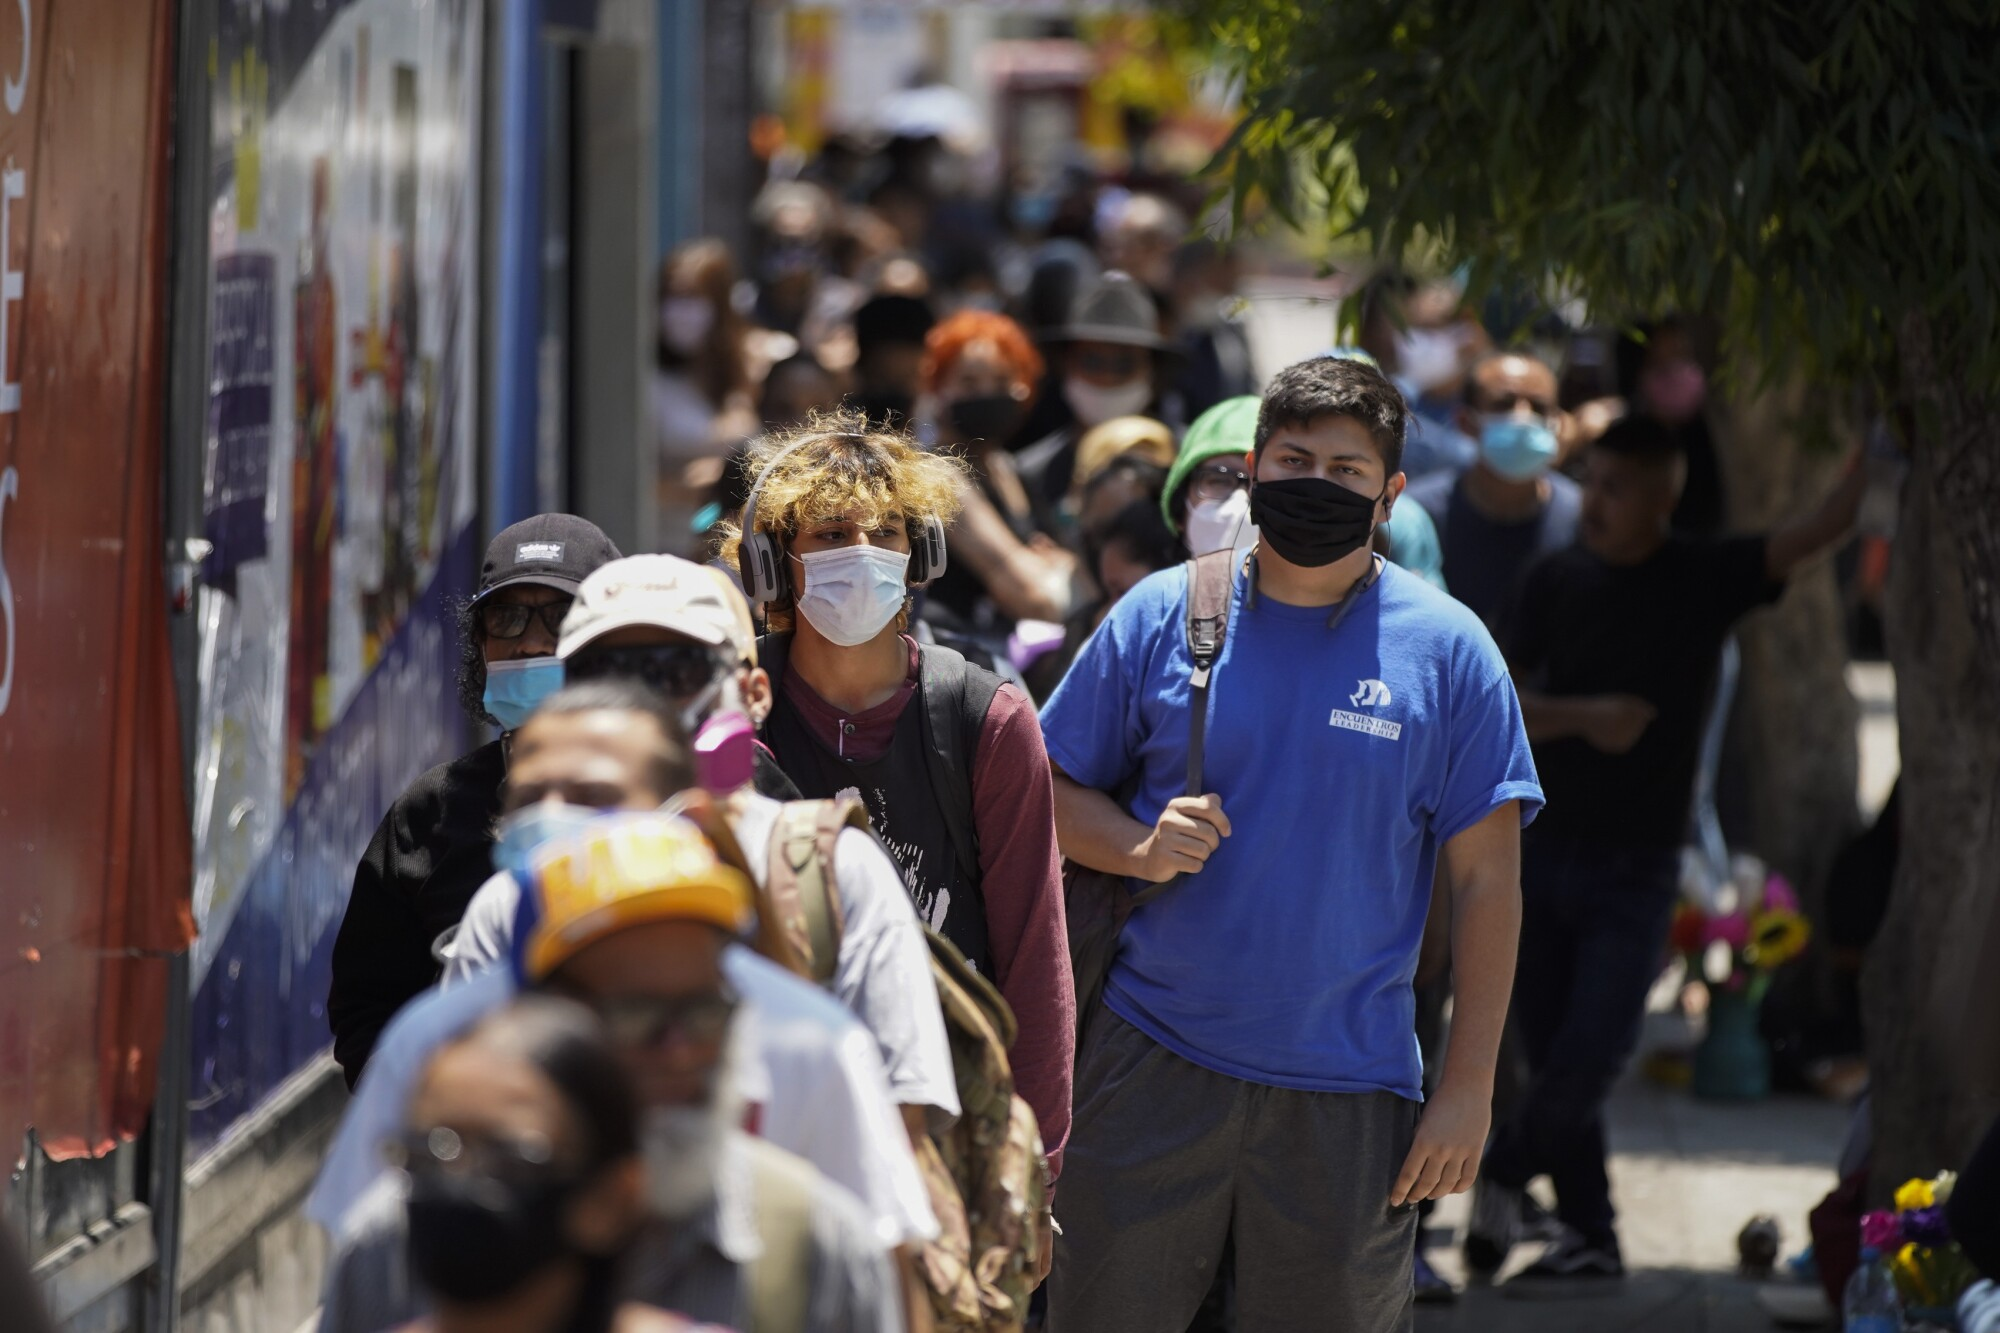 Mask-wearing people wait in a long line outside at the San Ysidro Port of Entry to cross from Tijuana